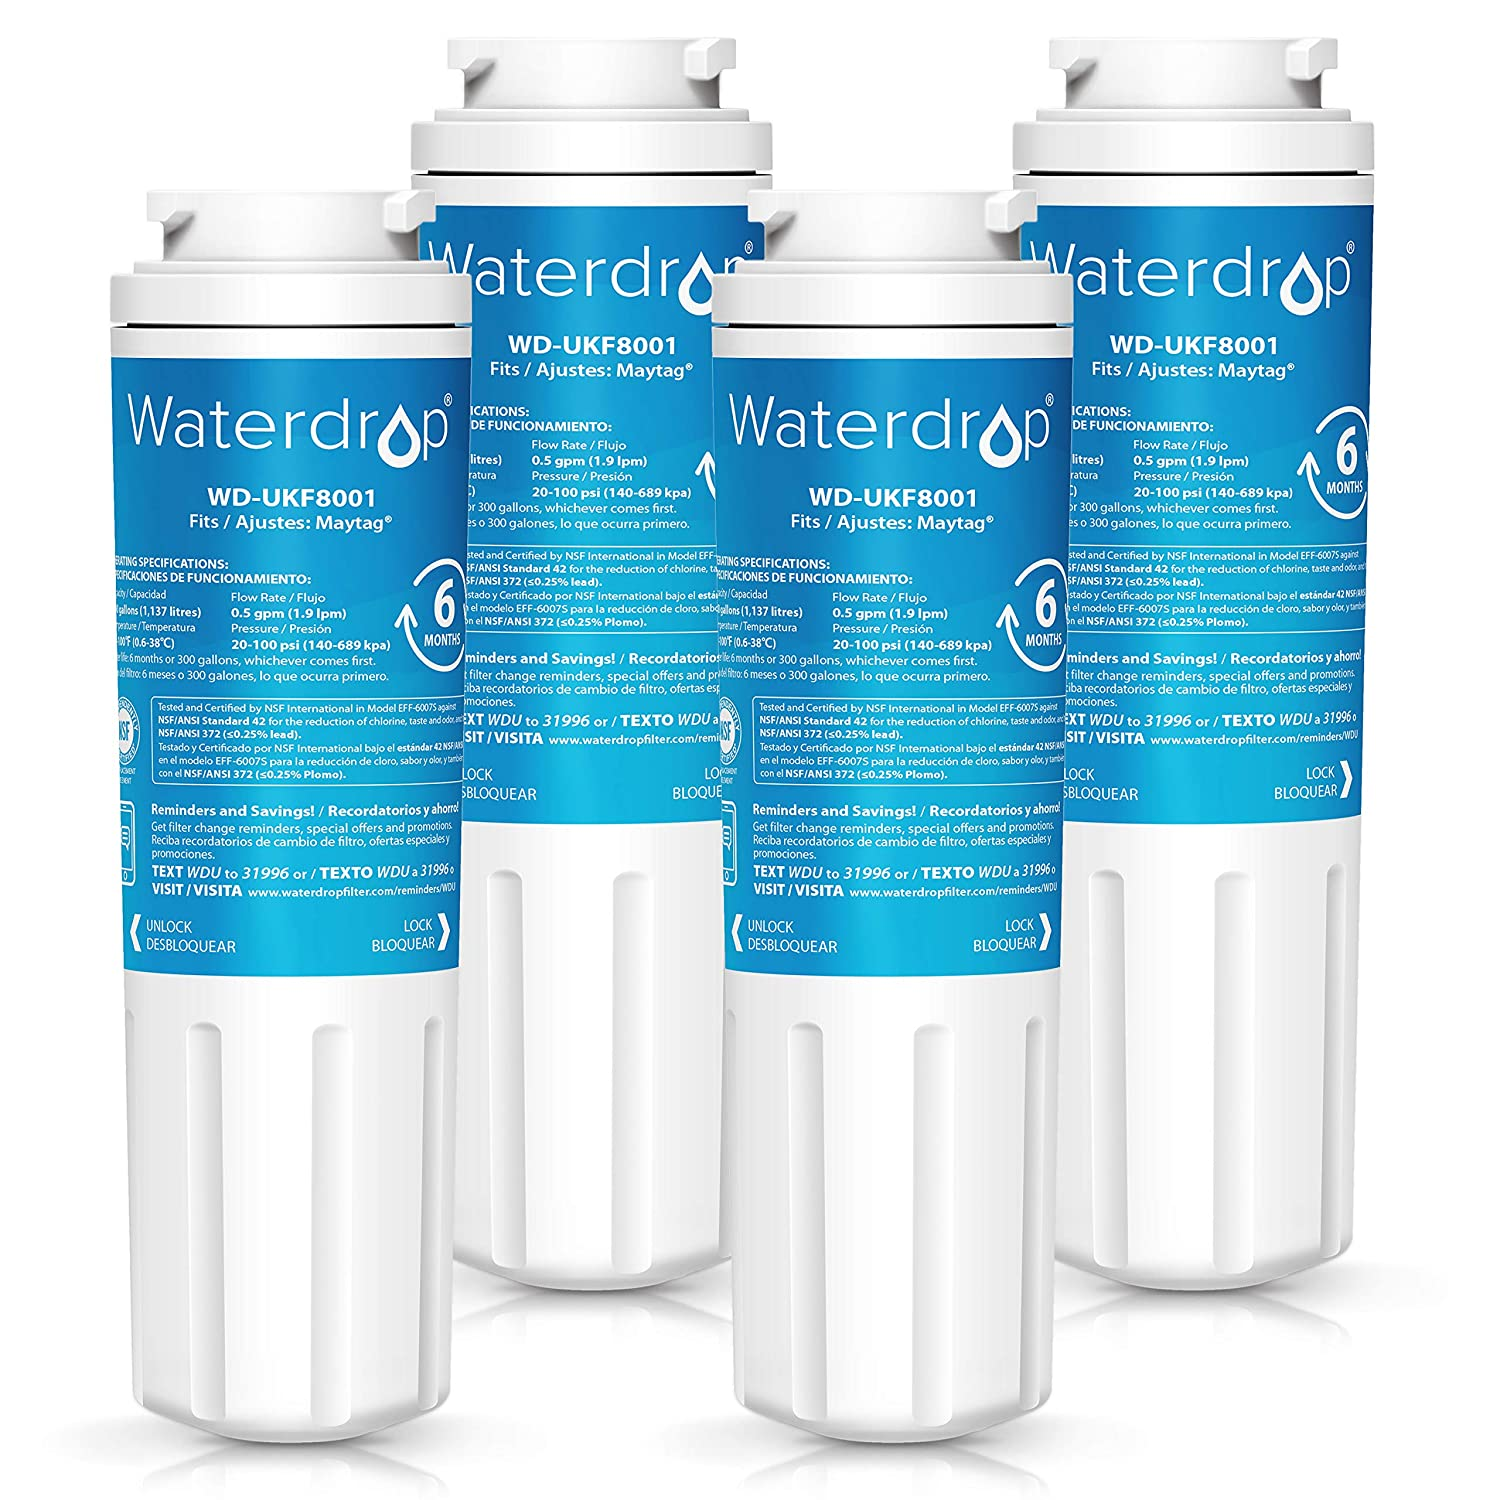 Waterdrop UKF8001 Refrigerator Water Filter, Compatible with Maytag UKF8001, UKF8001AXX, UKF8001P, 4396395, 469006, Filter 4, Puriclean II, Pack of 4